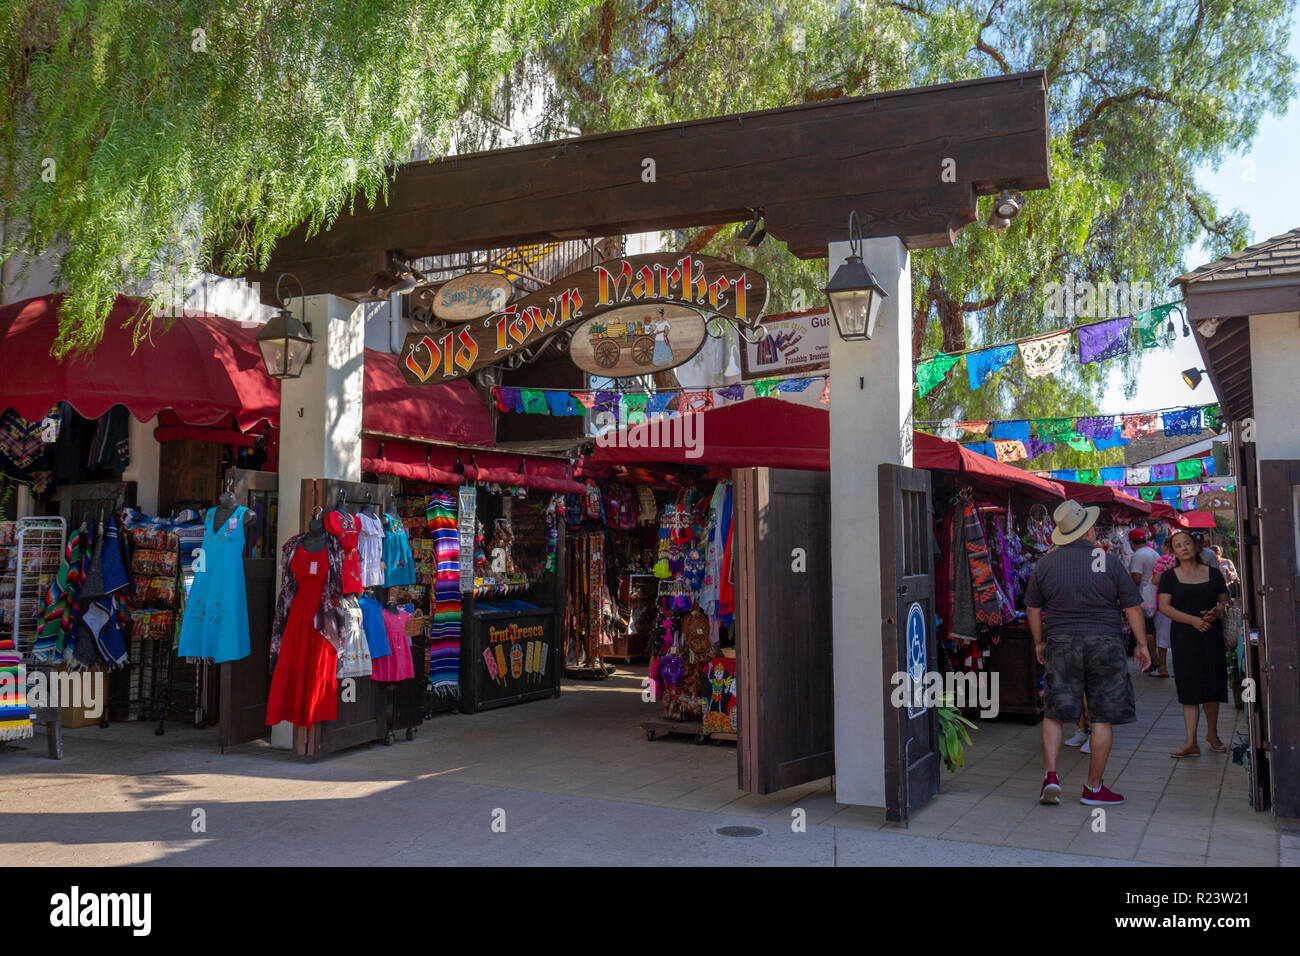 Entrance To The Old Town Market Old Town San Diego State Historic Park San Diego California United States Stock Photo Alamy